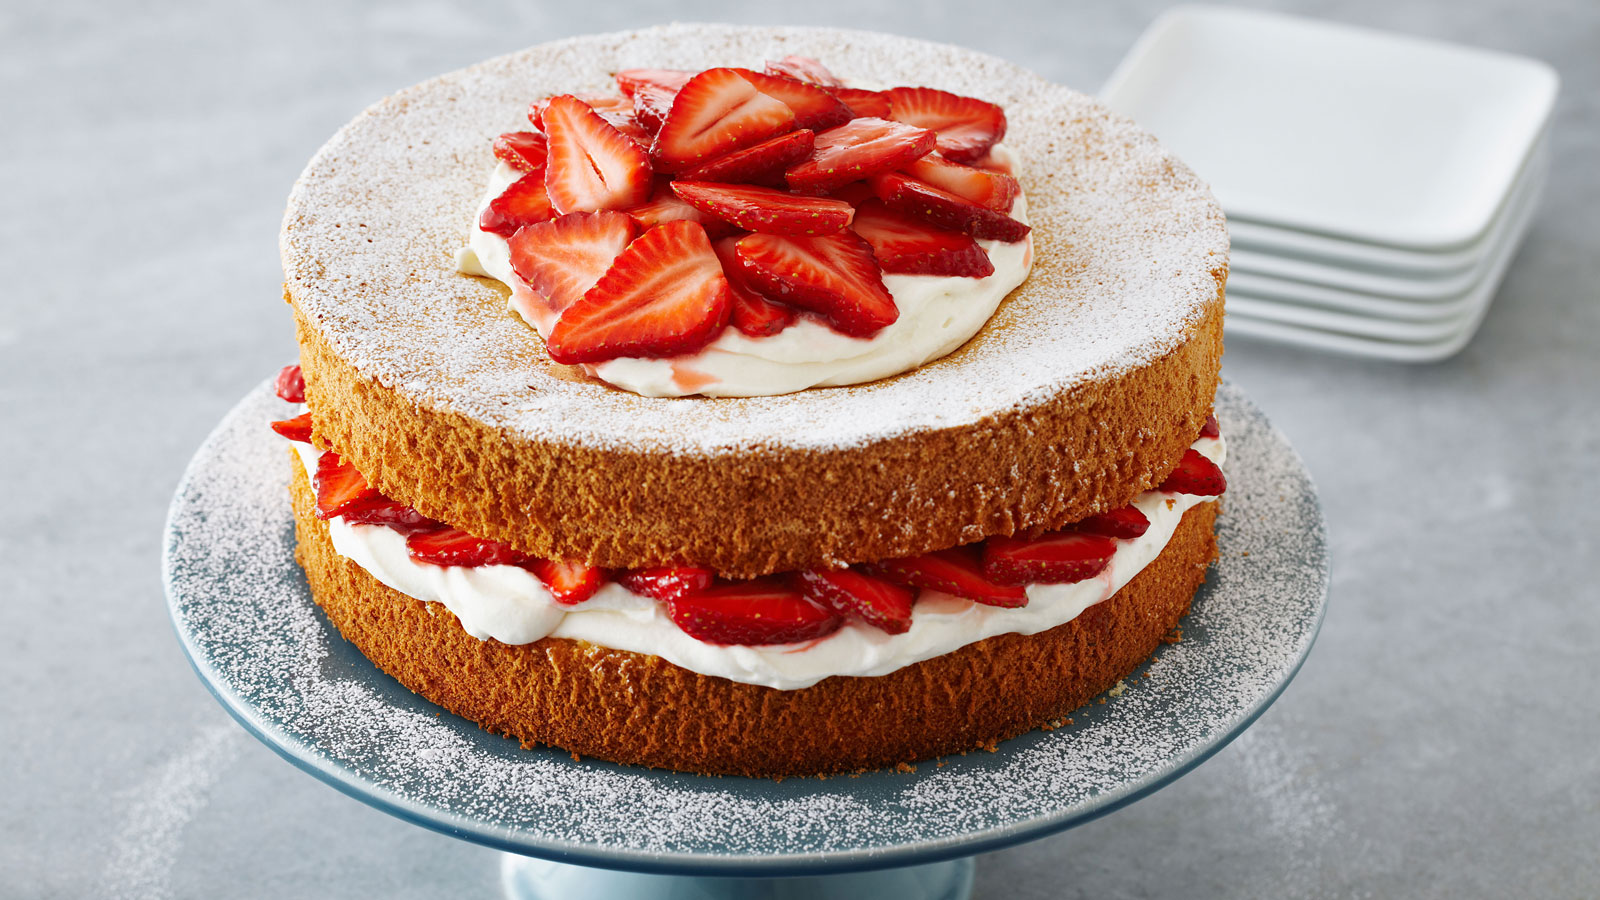 How To Make Filling For Victoria Sponge Cakes